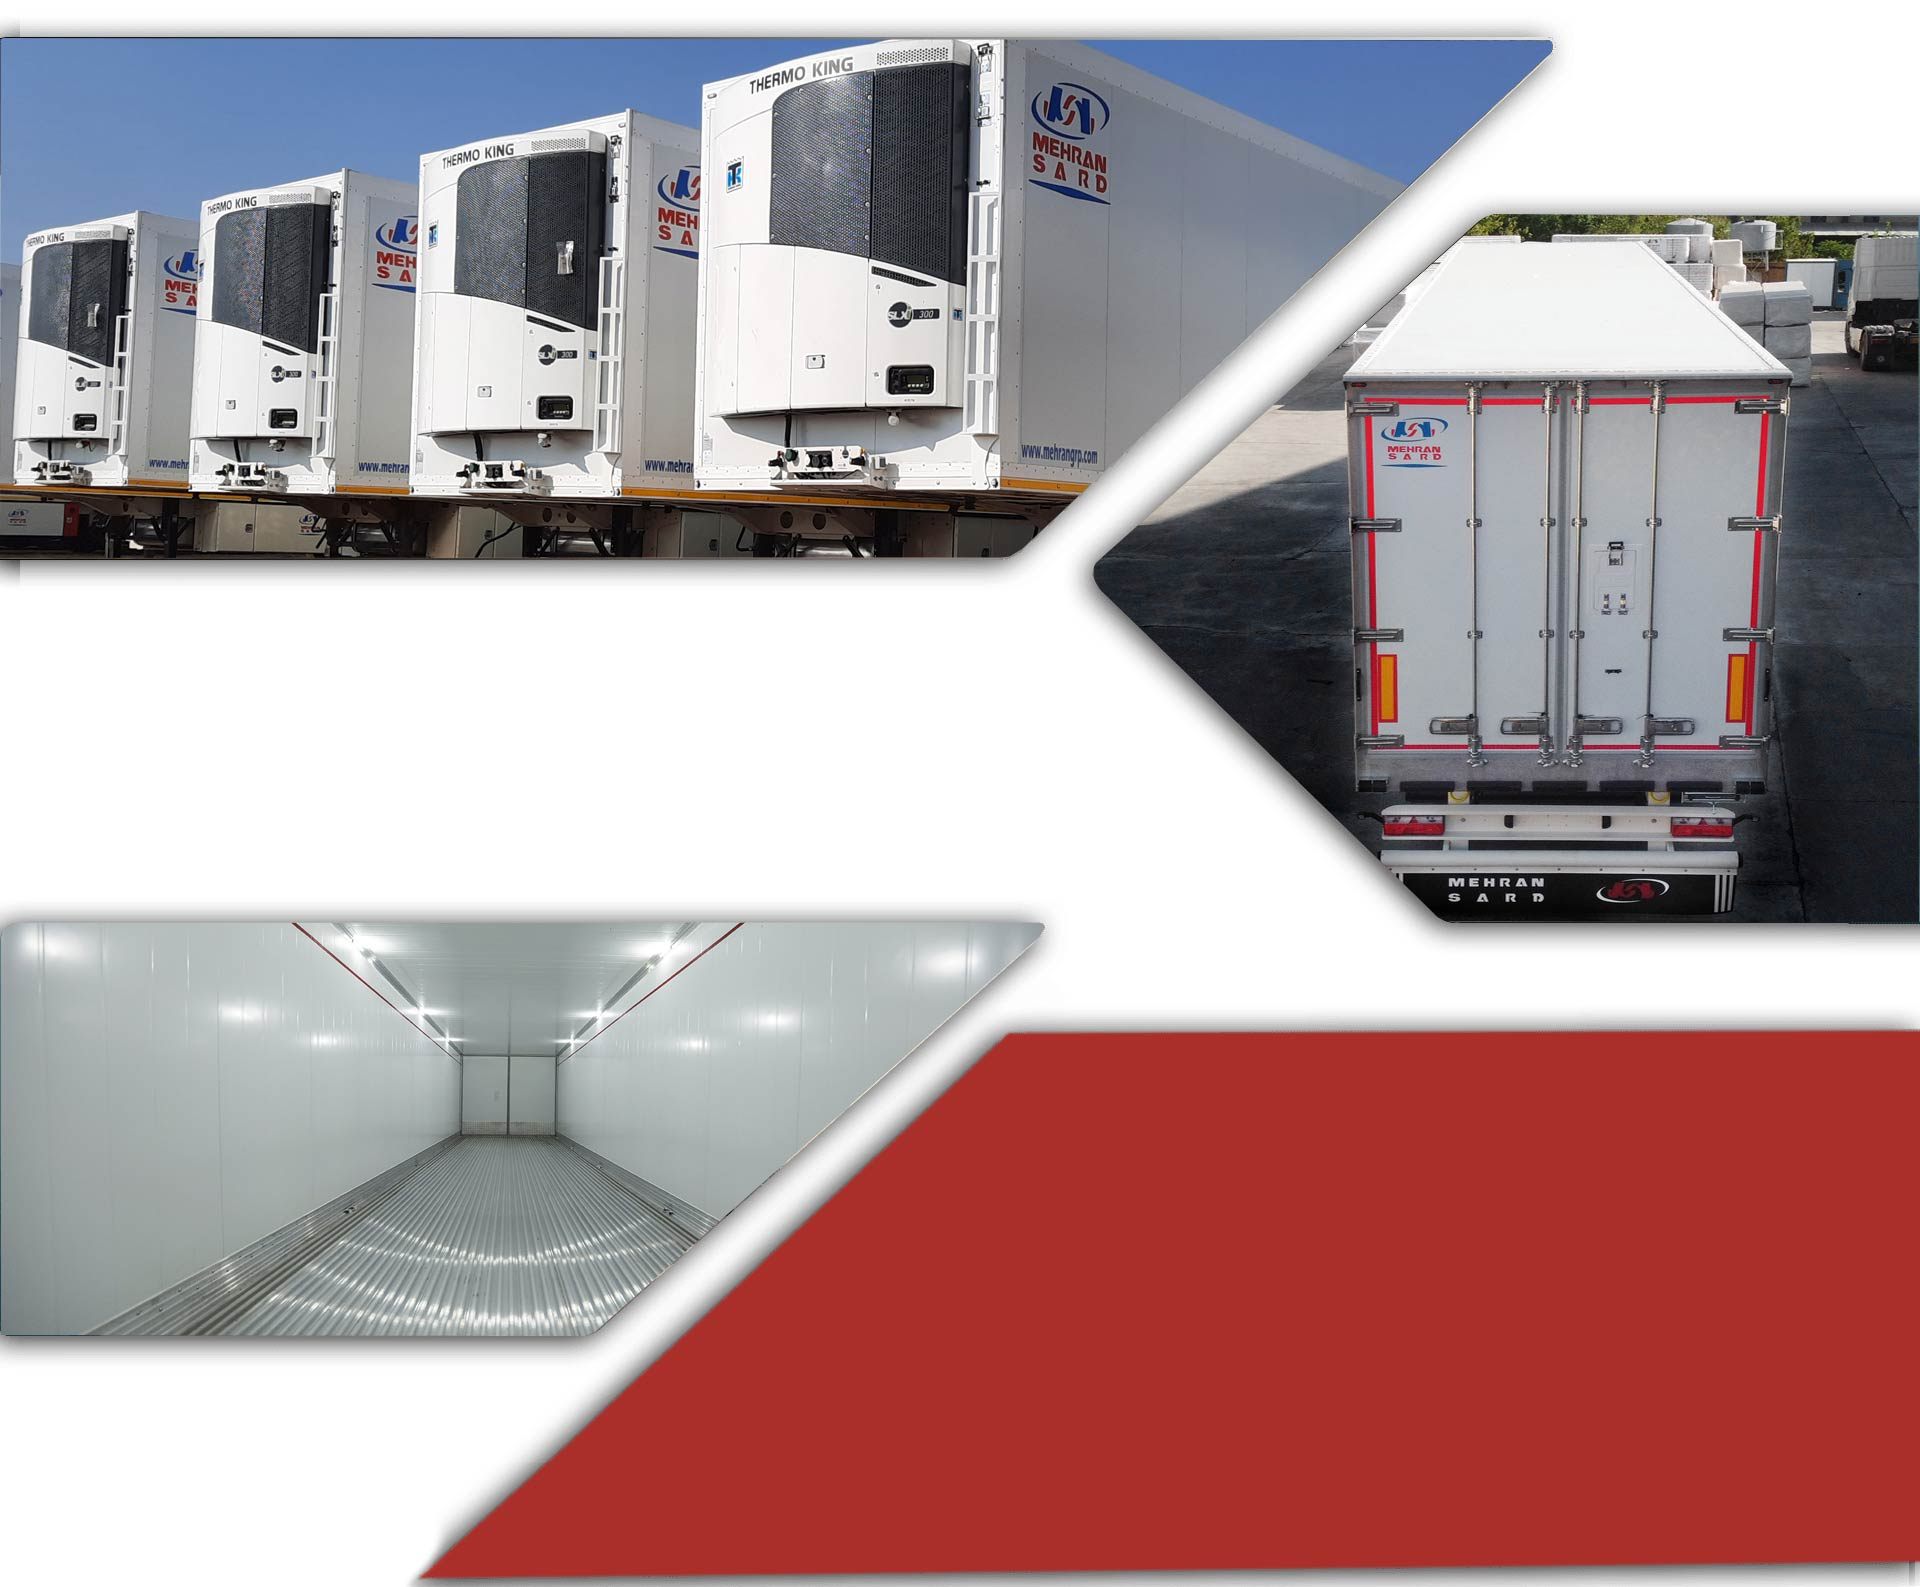 Big-refrigerated-container2-11-3dxc